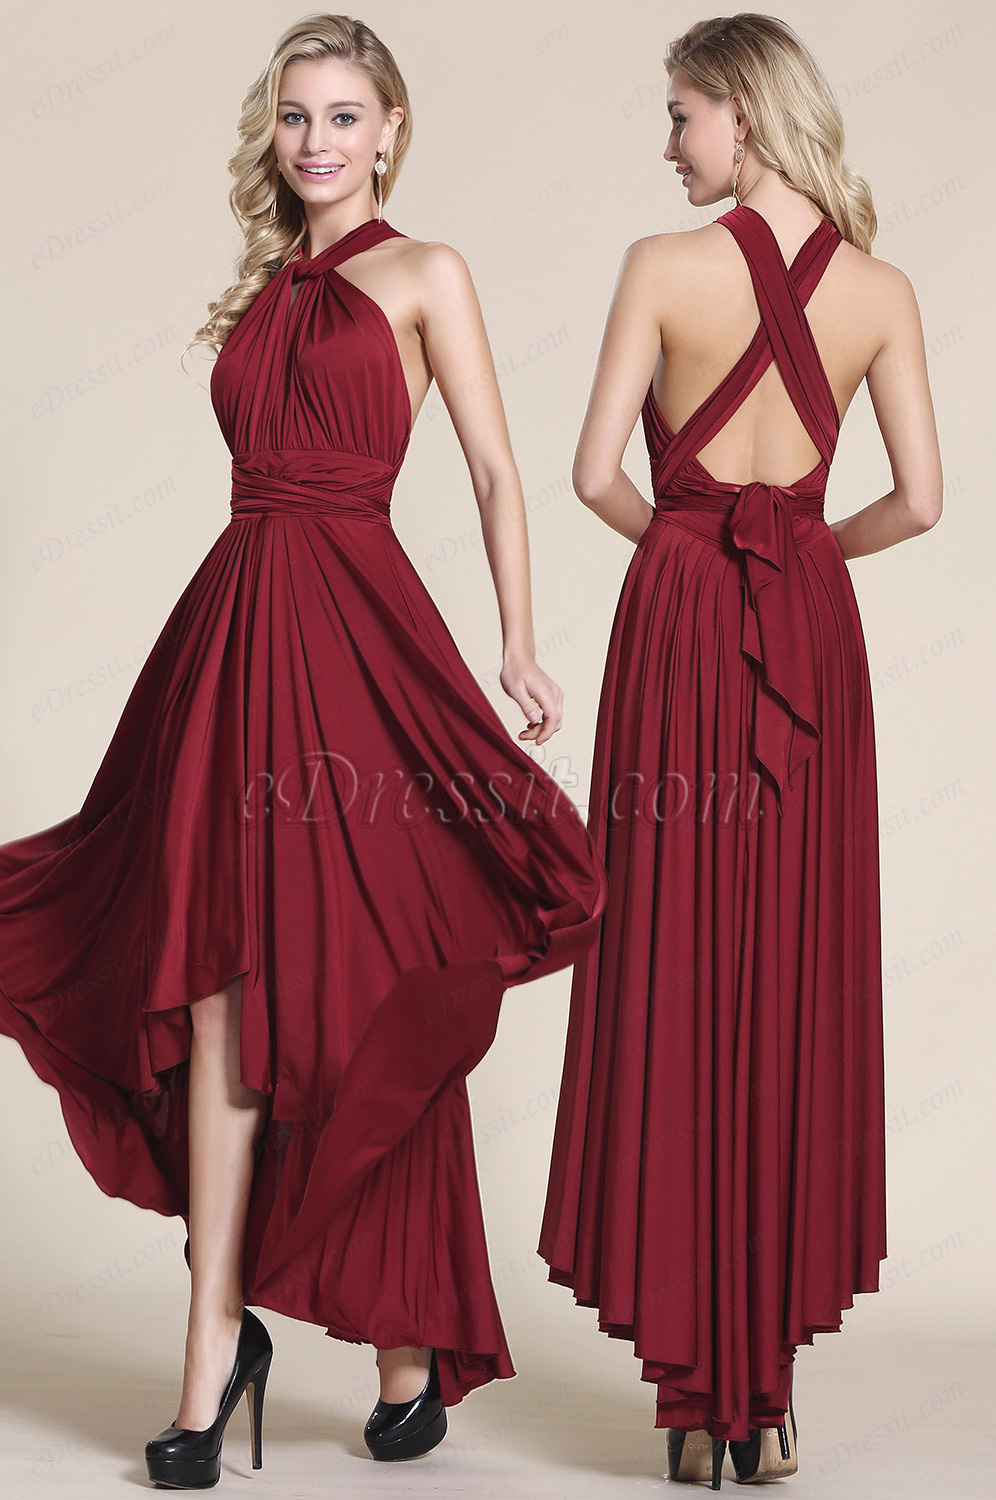 Edressit big day must have magical convertible bridesmaid dress ombrellifo Gallery